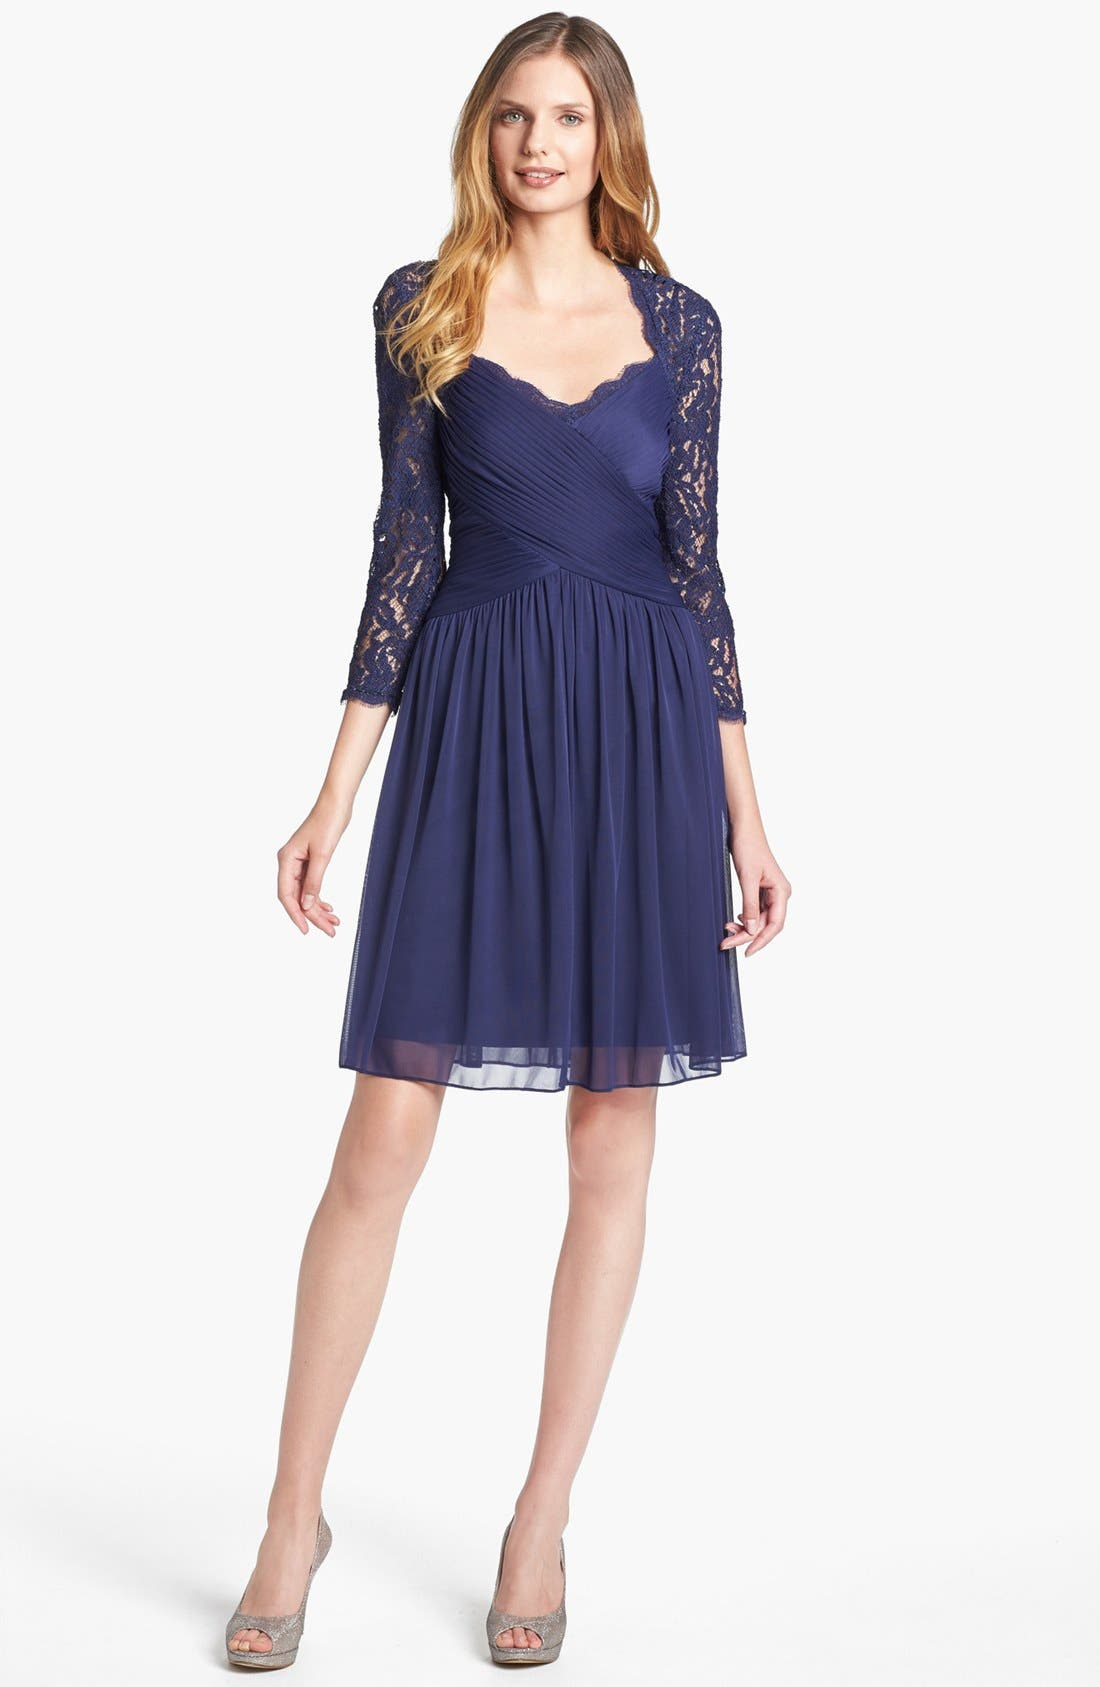 Main Image - Adrianna Papell Lace Sleeve Mesh Fit & Flare Dress (Petite)